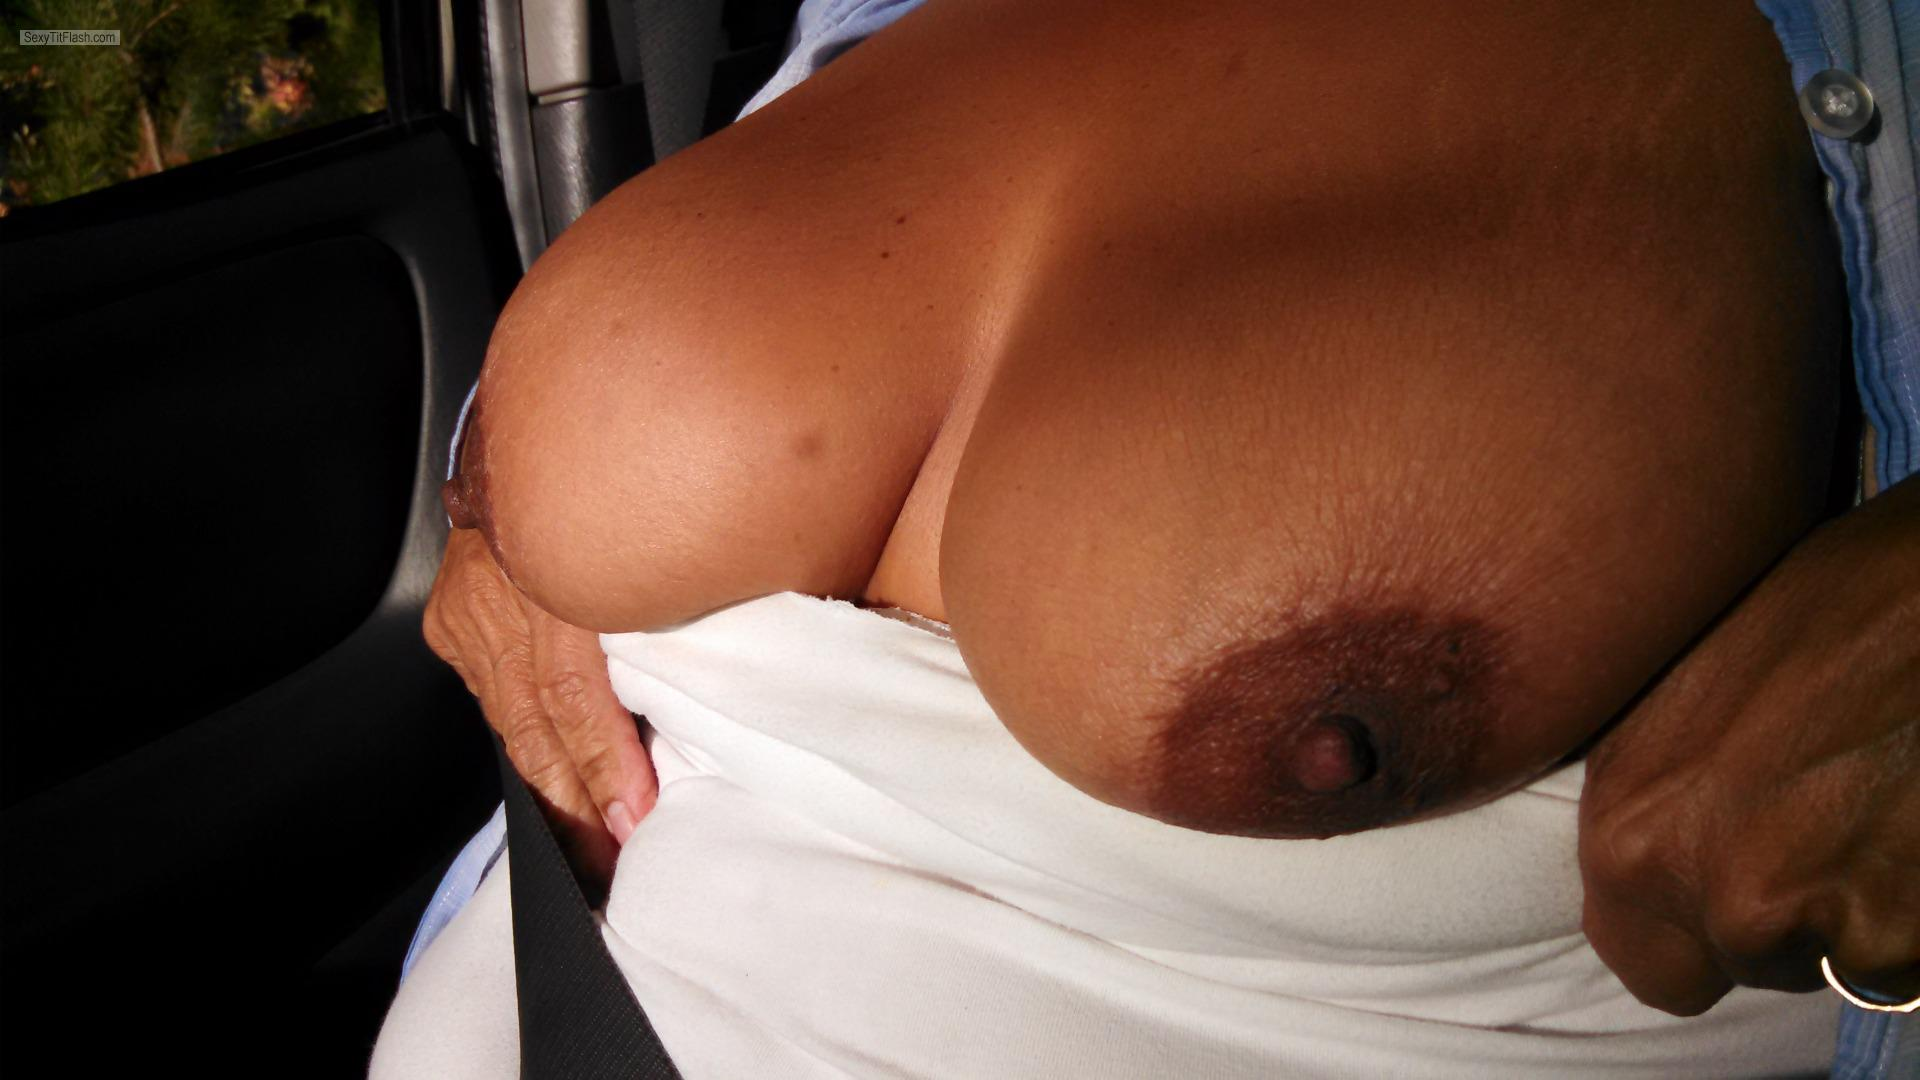 Tit Flash: Wife's Tanlined Very Big Tits - Karentits from United States